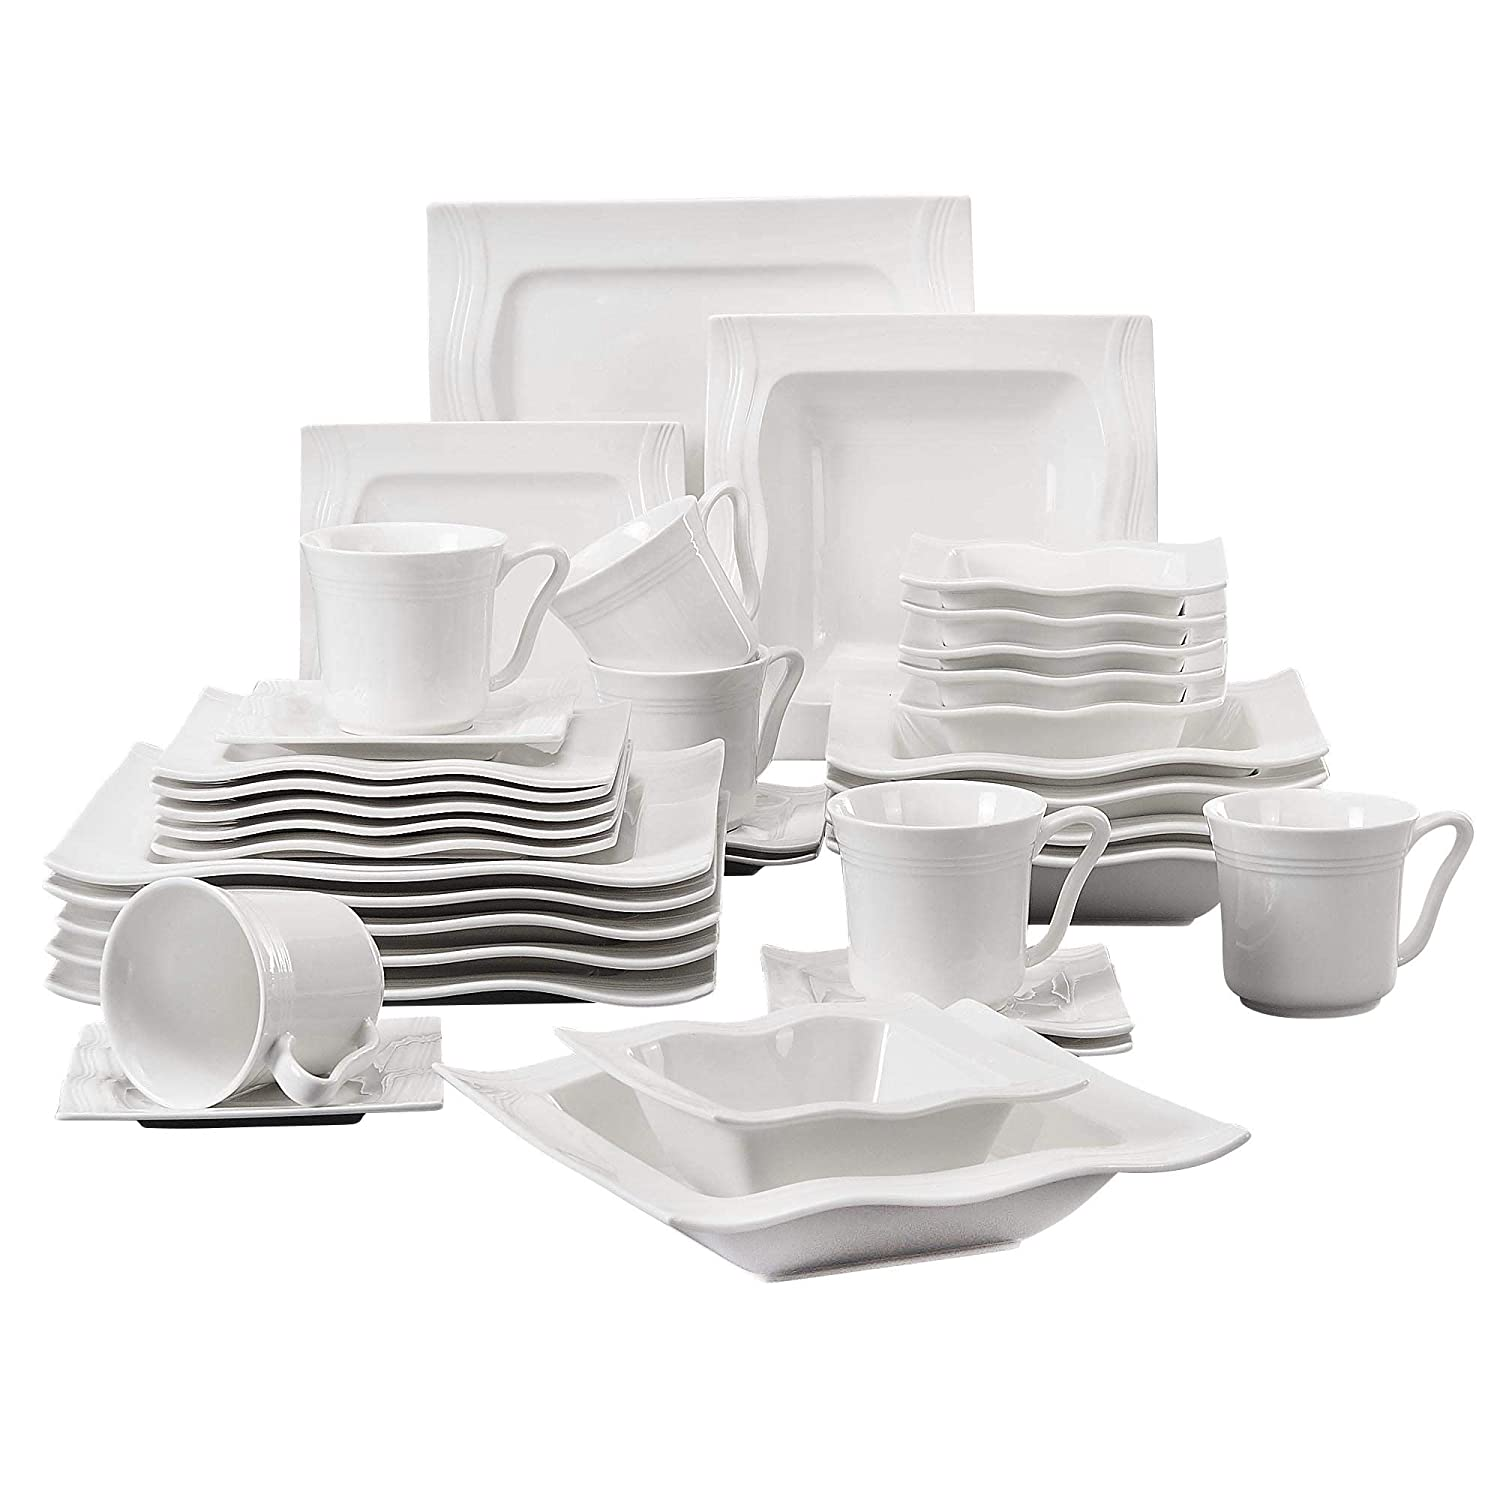 Malacasa, Series Mario, 28-Piece Cream White Porcelain China Dinner Set with 6-Piece Bowls 6-Piece Dessert Plates 6-Piece Soup Plates 6-Piece Dinner Plates One Pair Salt Shaker Set 2-Piece Rectangular Plates Service Set for 6